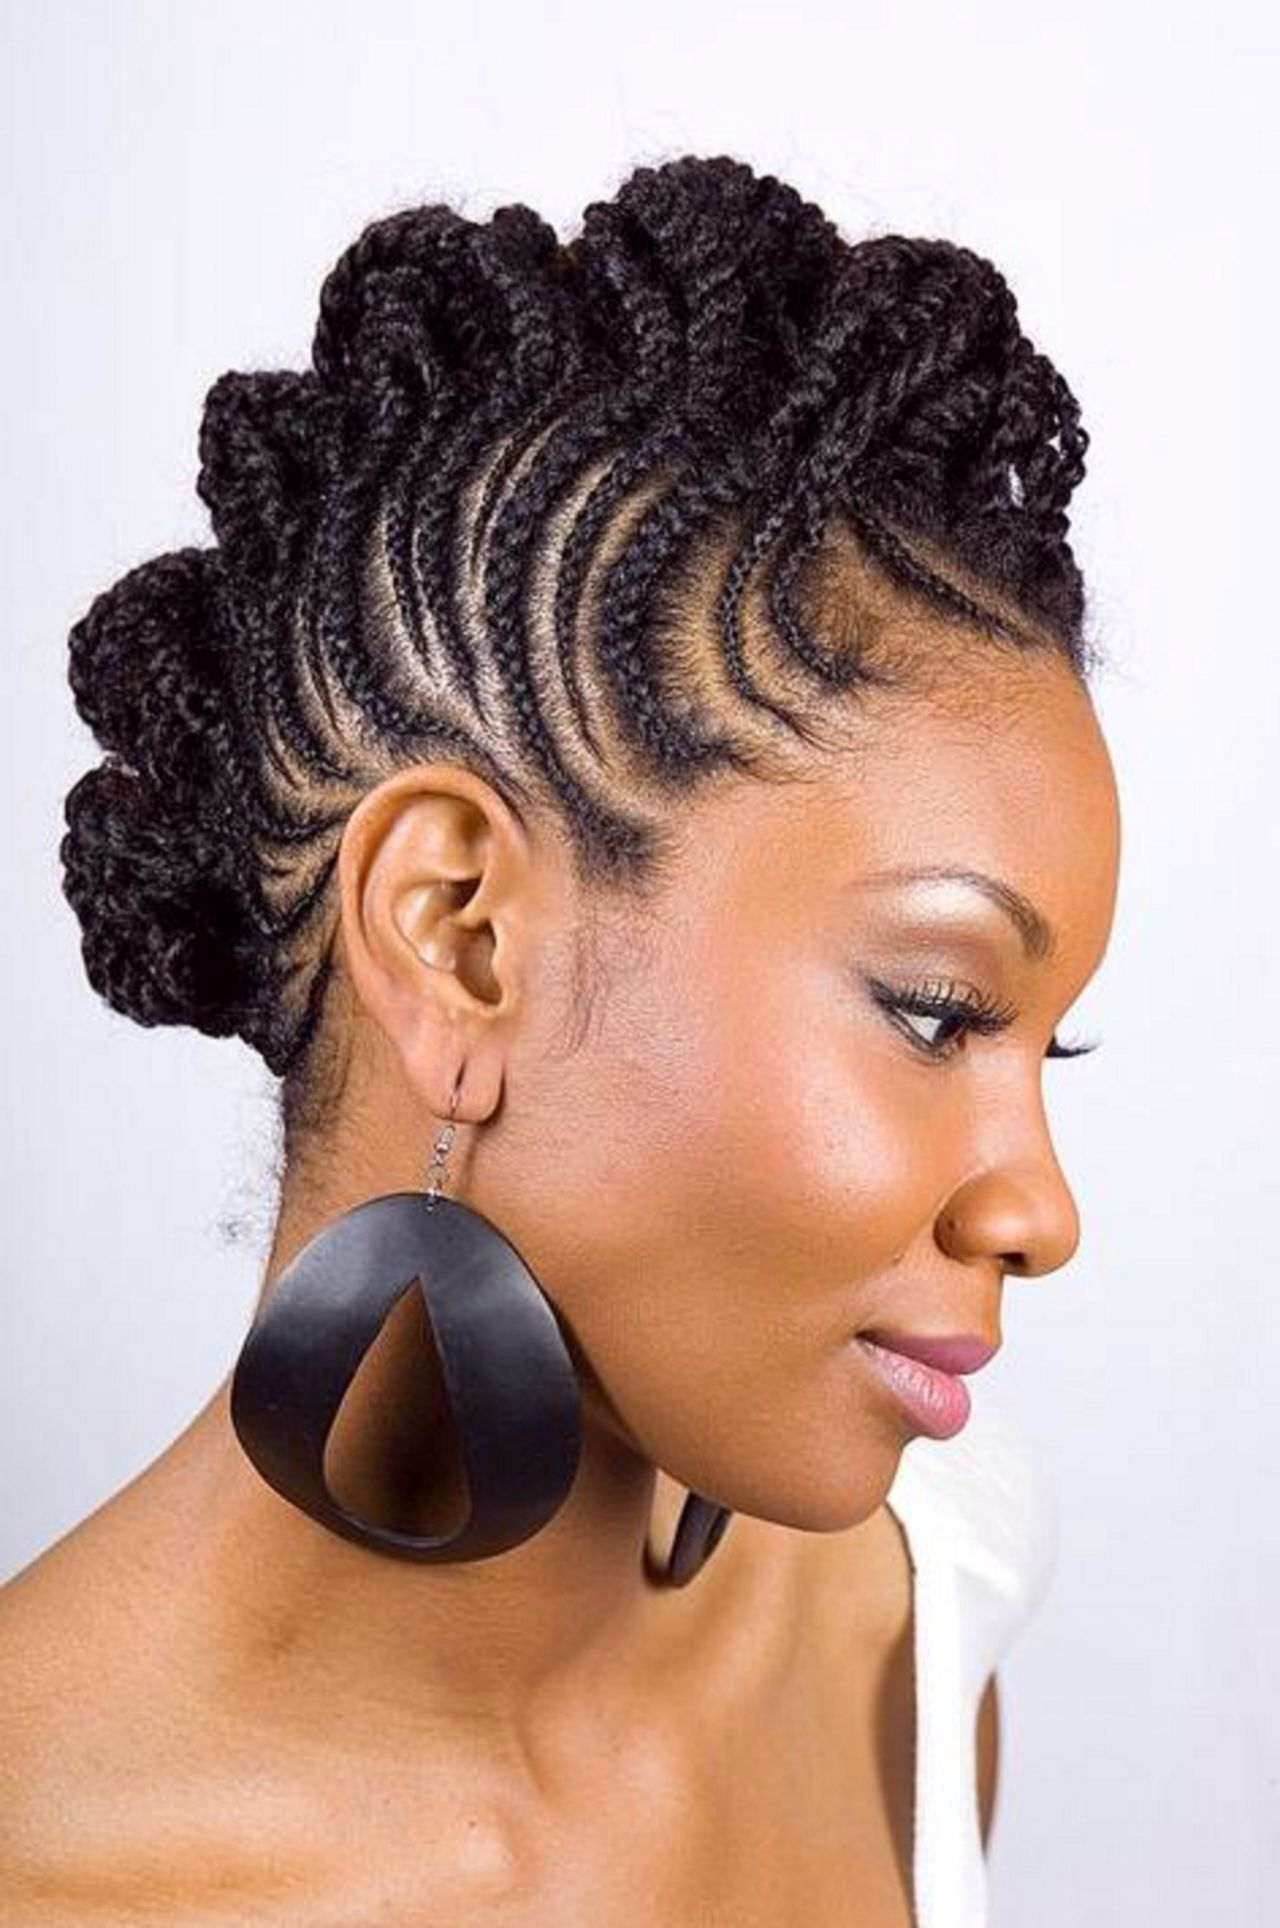 African naturalistas how to style your natural hair mohawk - Nice Braided Mohawk Hairstyles For Black Women